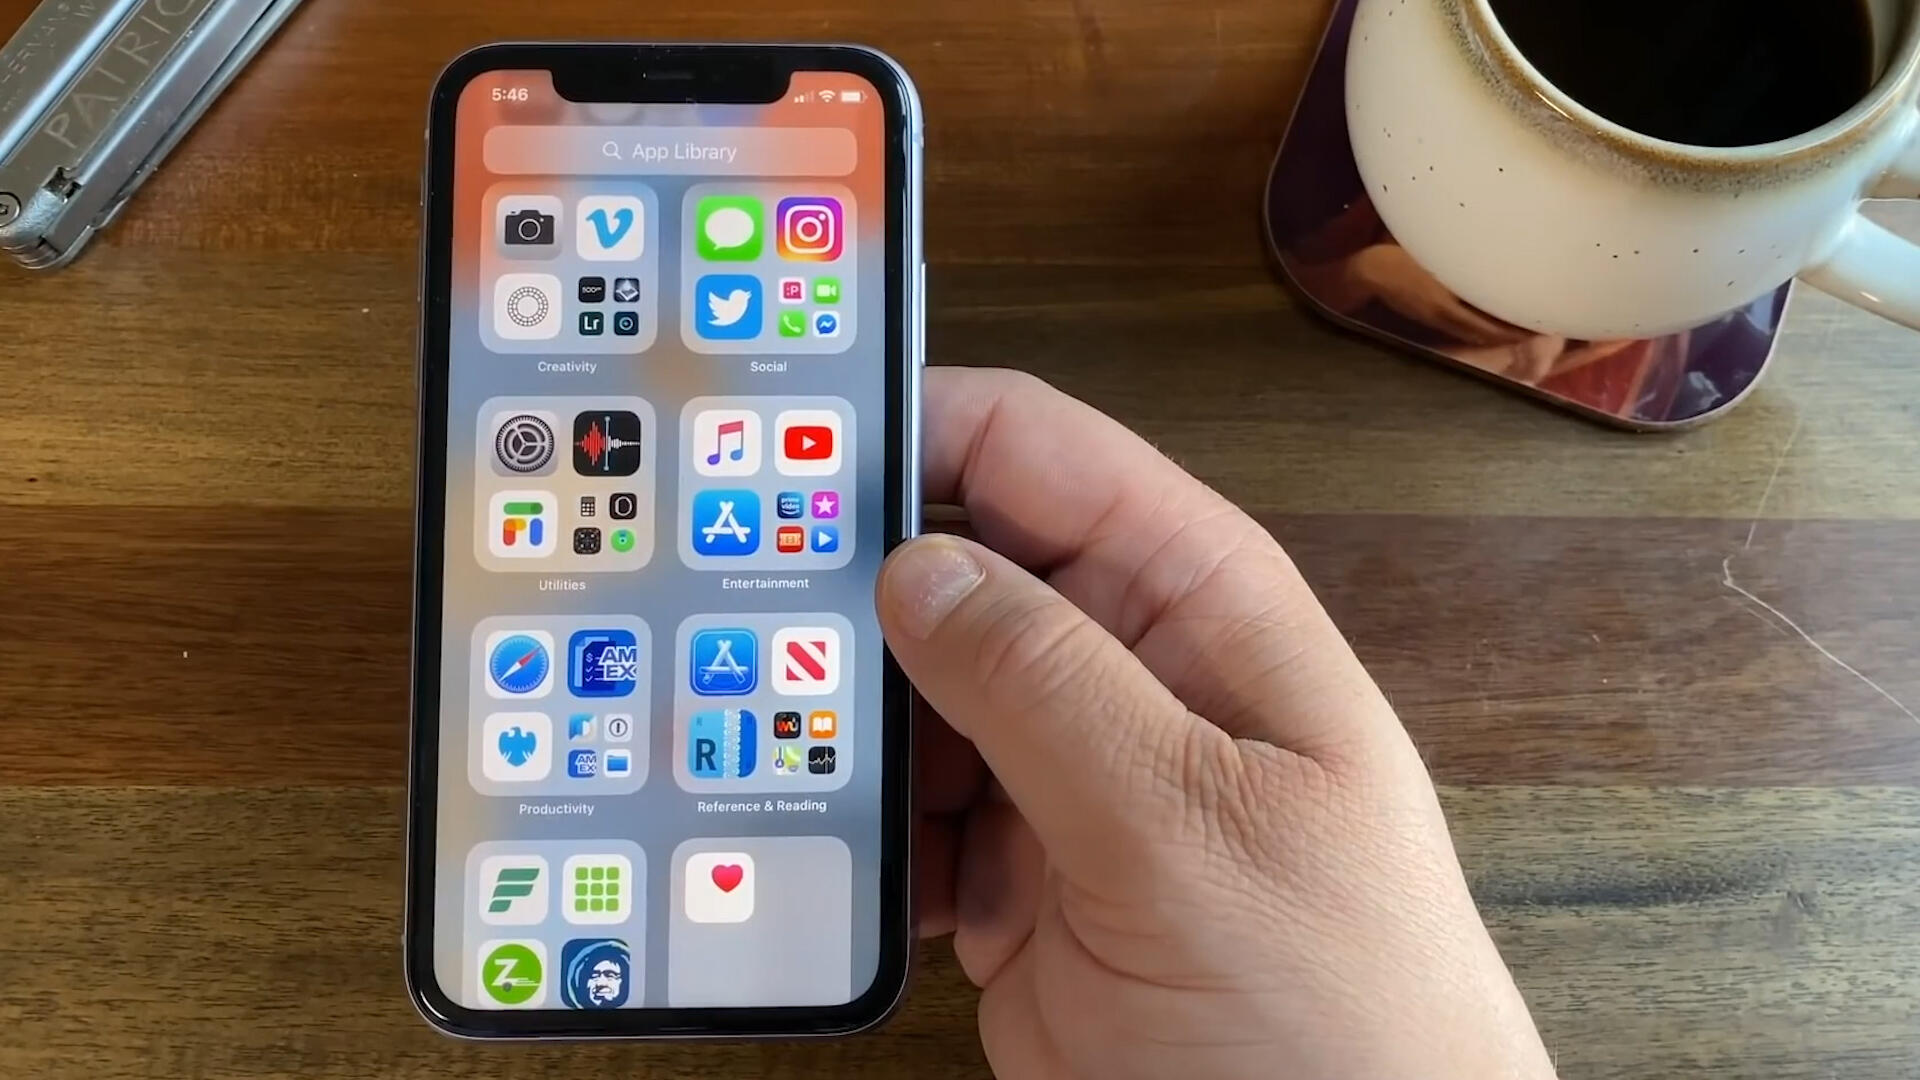 Video: iOS 14 tips and tricks